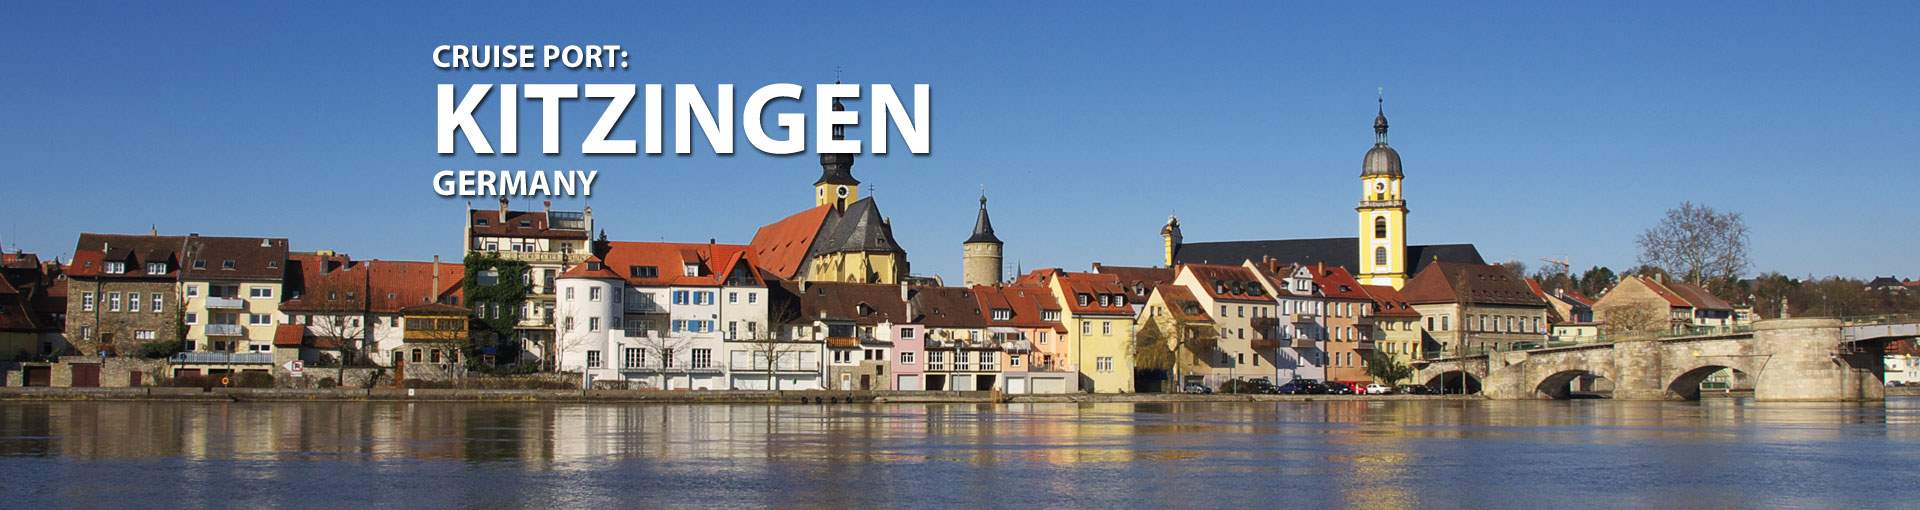 Cruises to Kitzingen, Germany